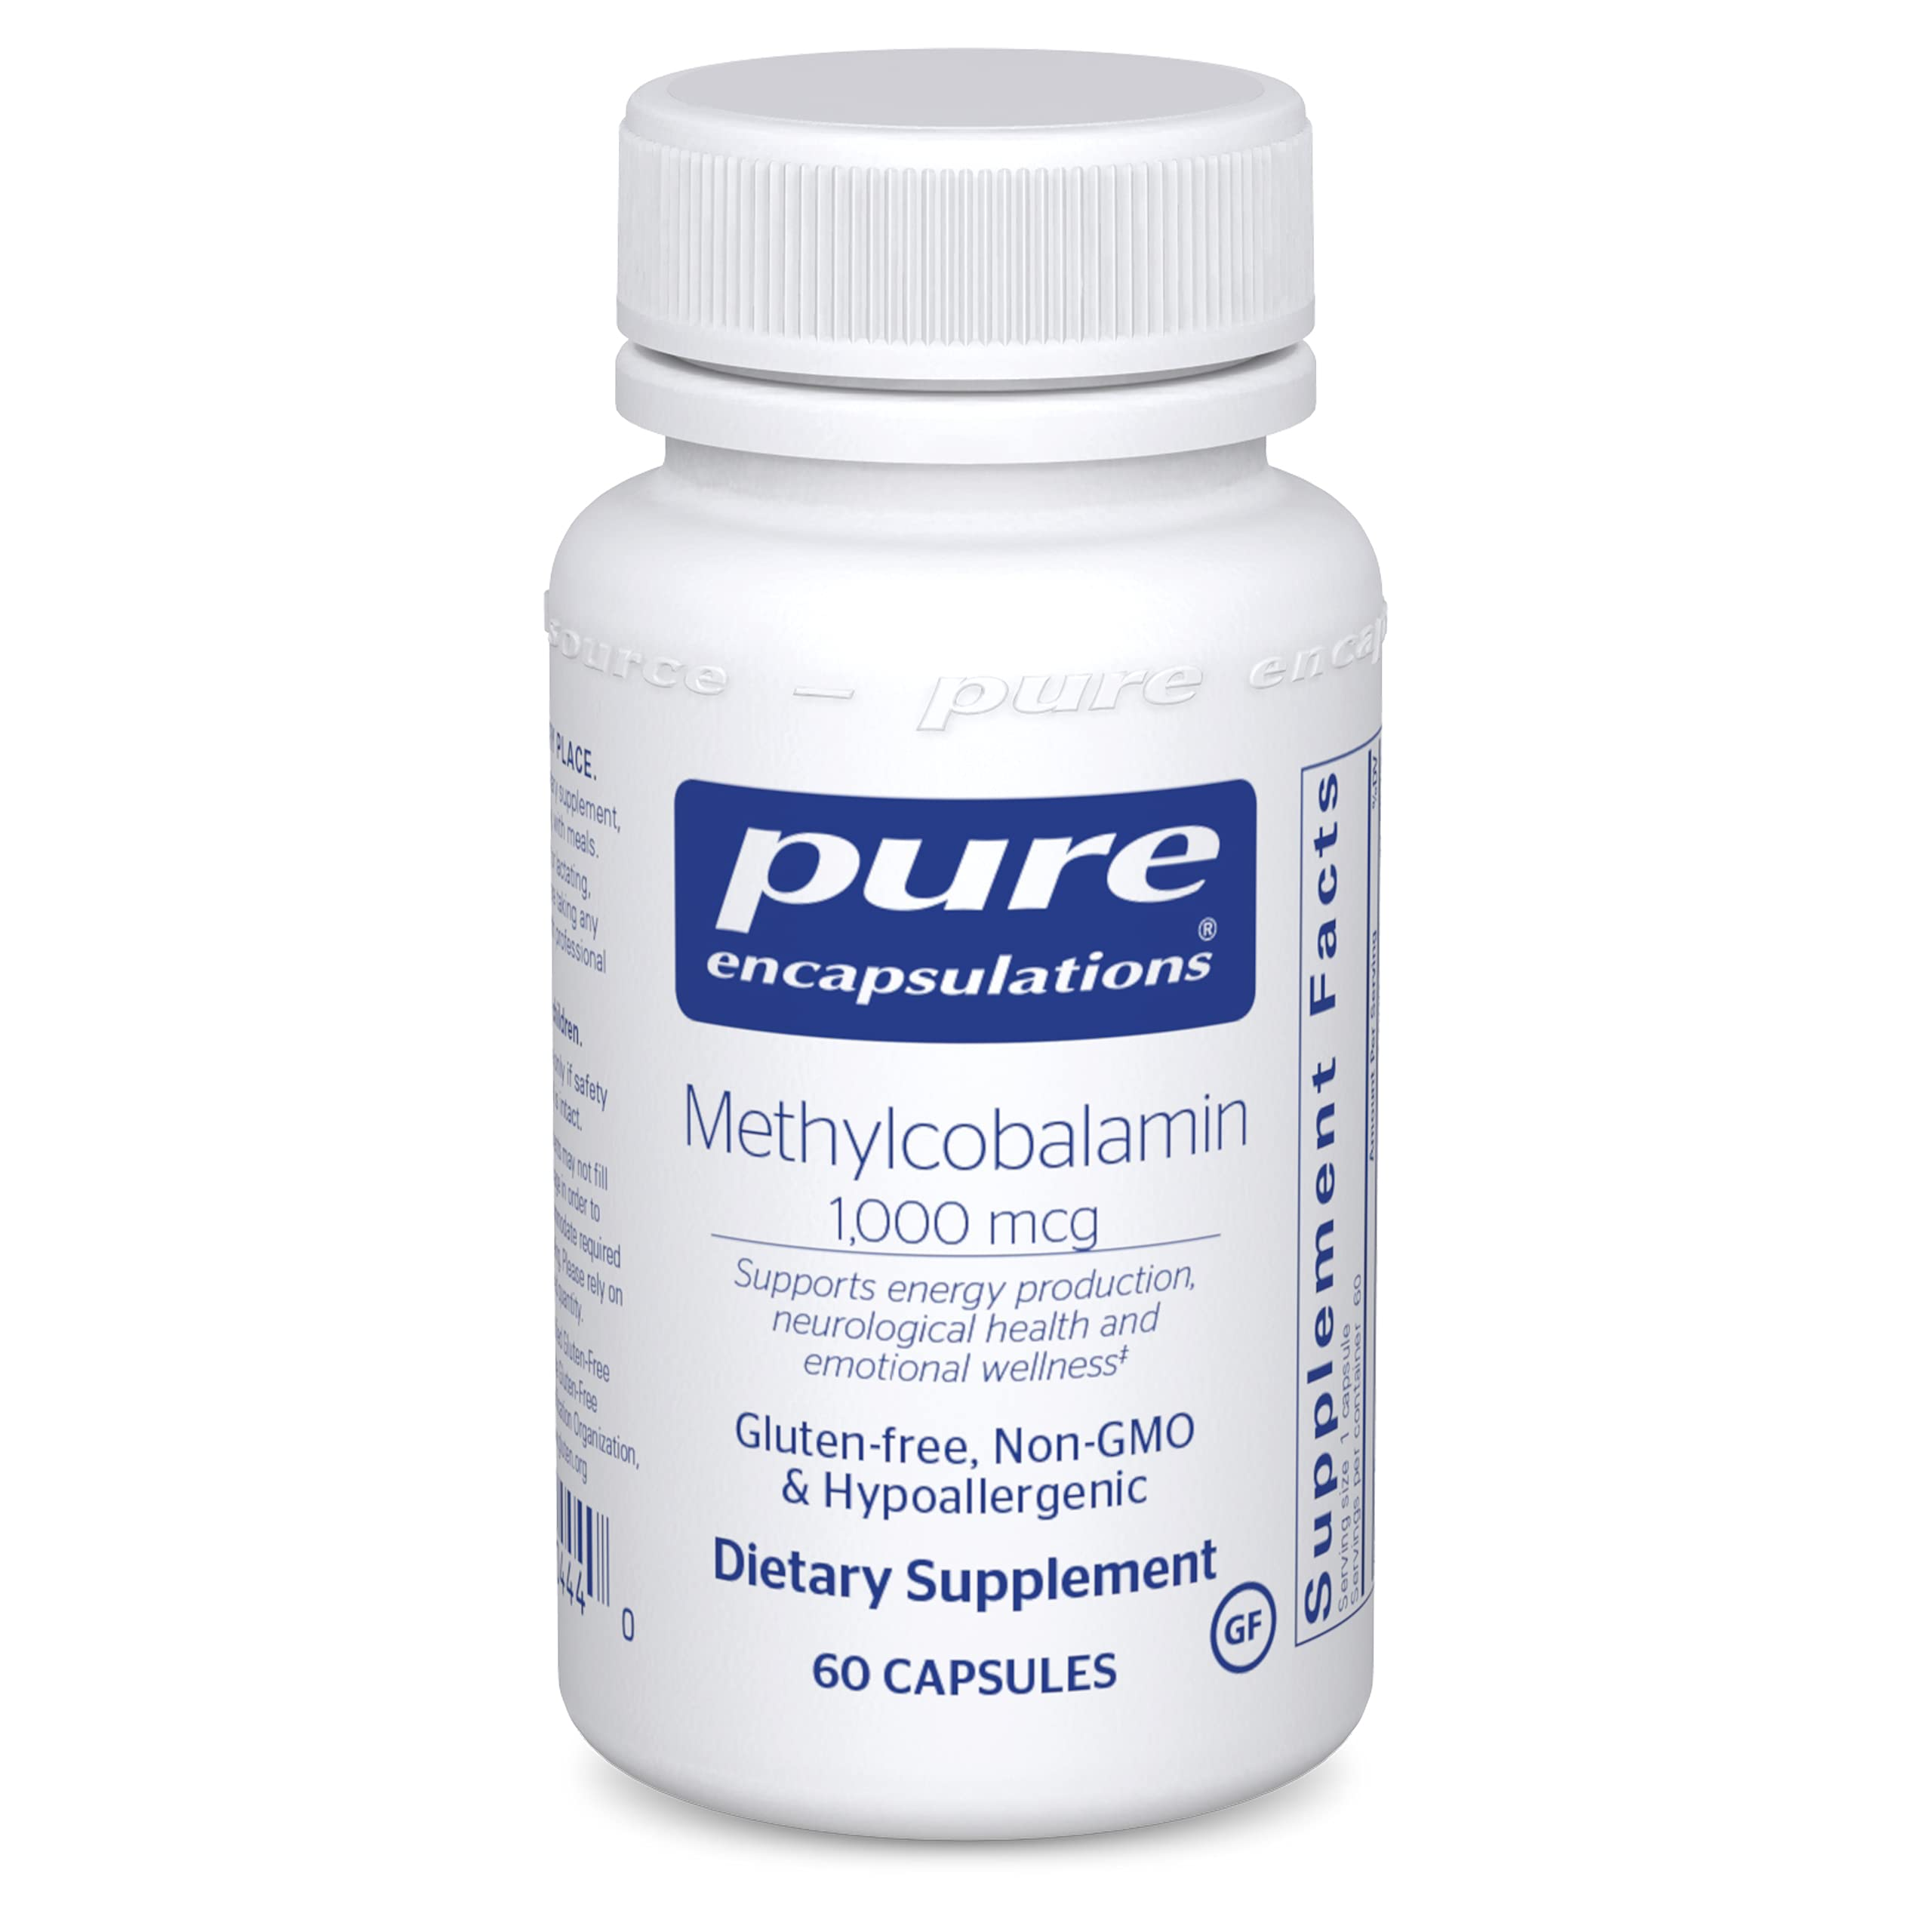 Pure Encapsulations Methylcobalamin 1,000 mcg   Vitamin B12 Supplement to Support Energy, Memory, Nerves, Emotional Wellness, and Cognitive Health*   60 Capsules